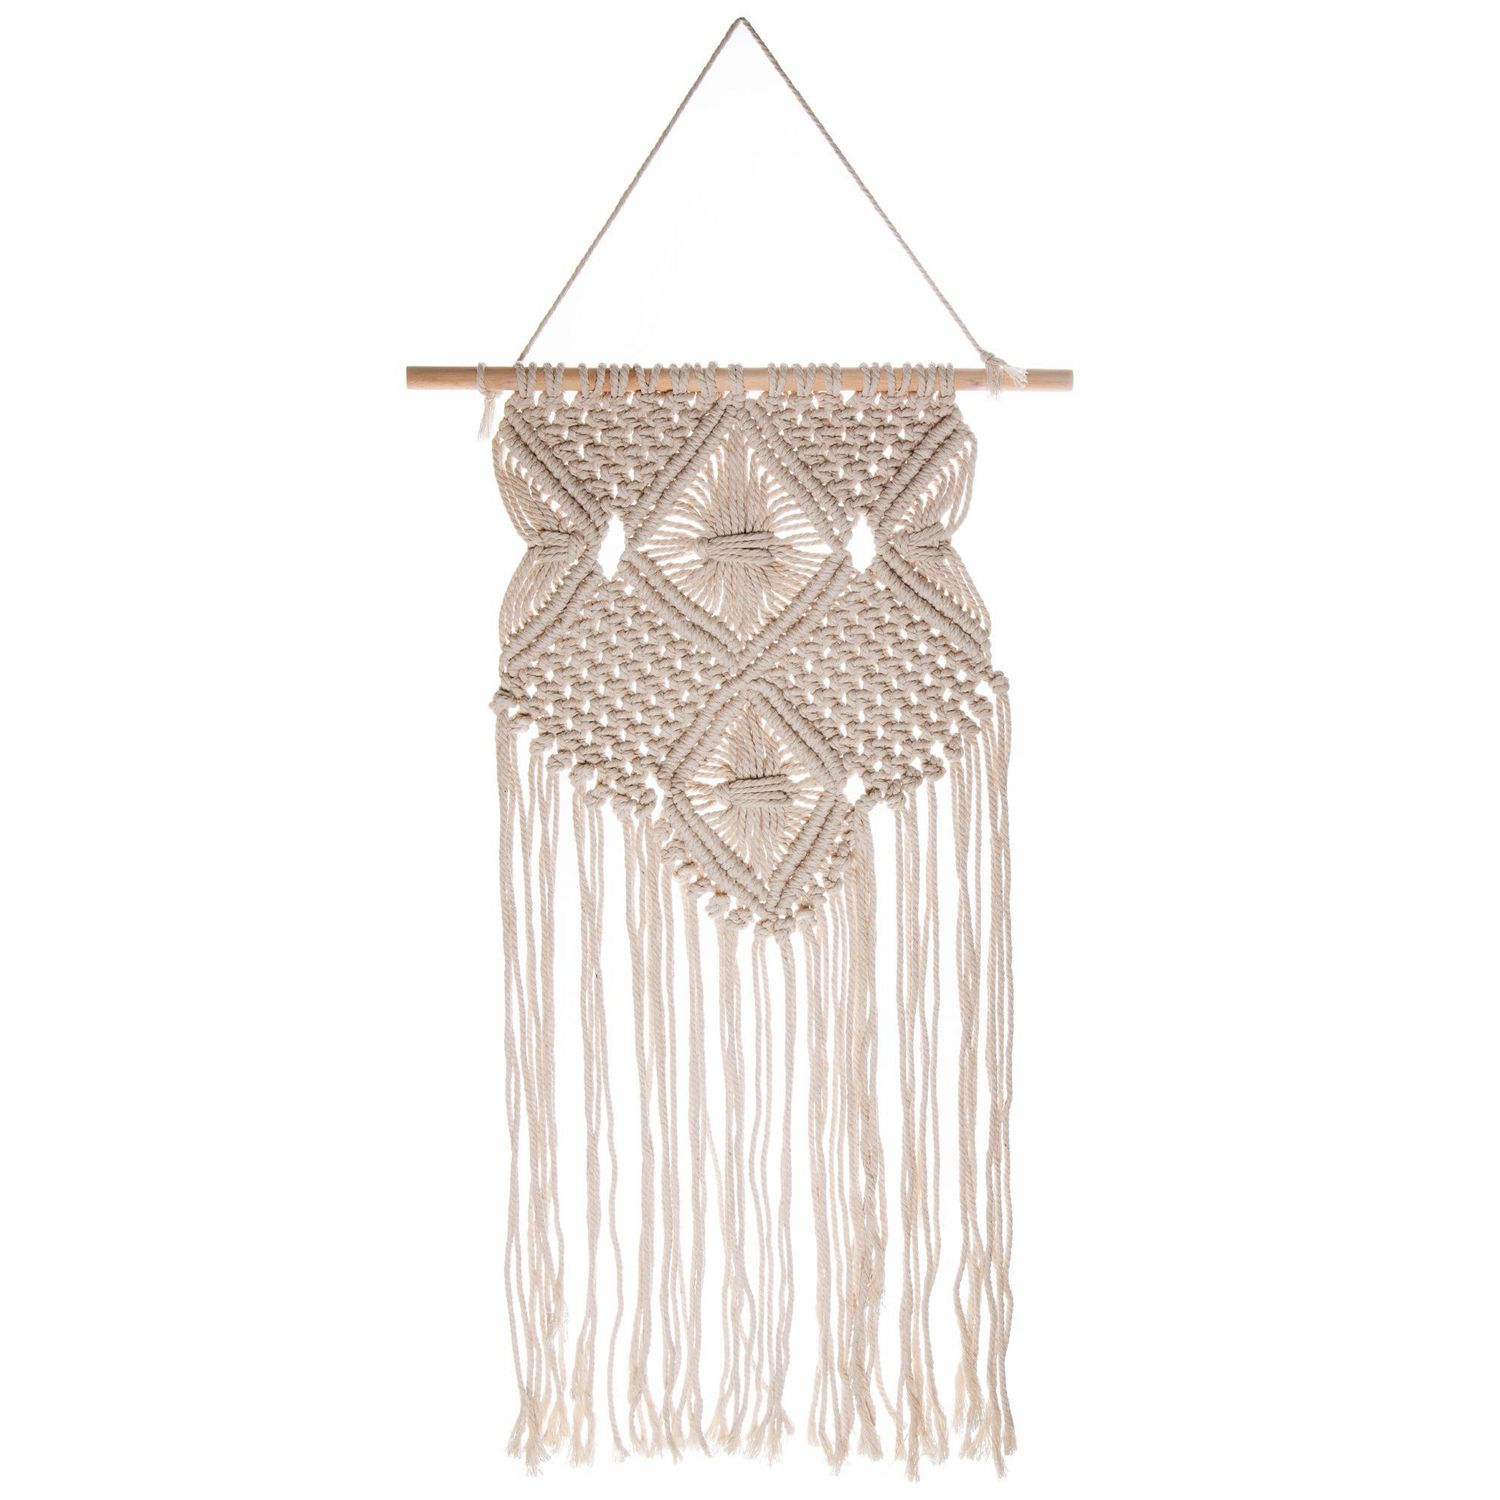 truu design hand crafted macrame wall hanging